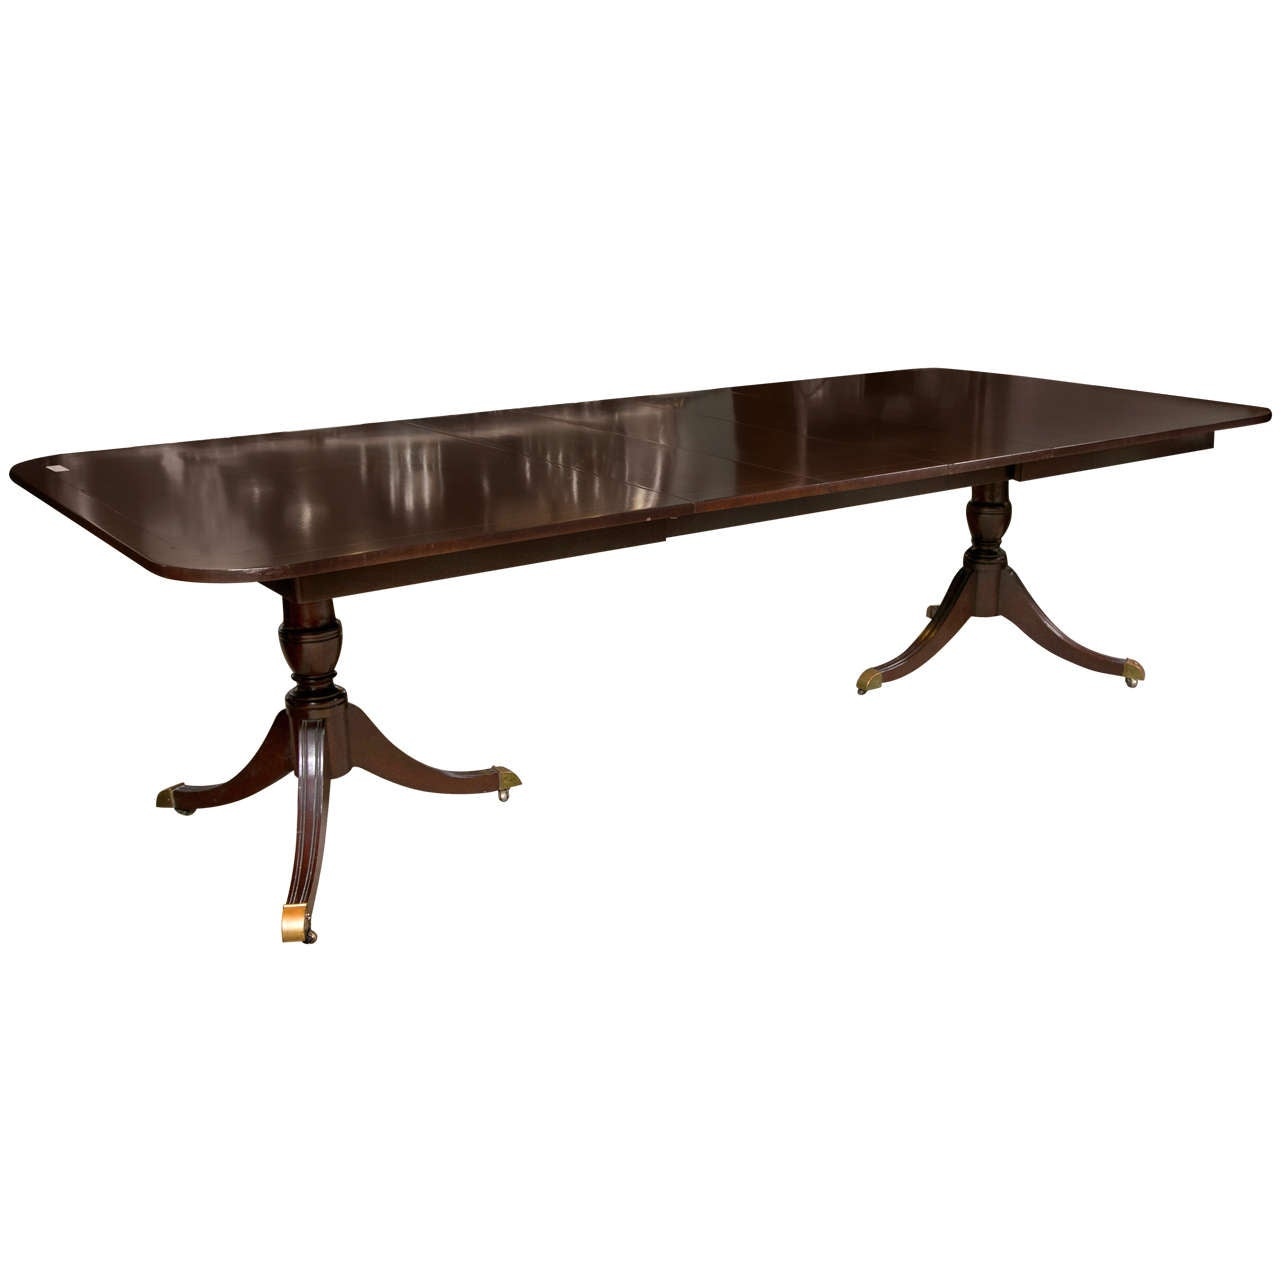 kindel mahogany double pedestal 4 leaf dining table at 1stdibs. Black Bedroom Furniture Sets. Home Design Ideas